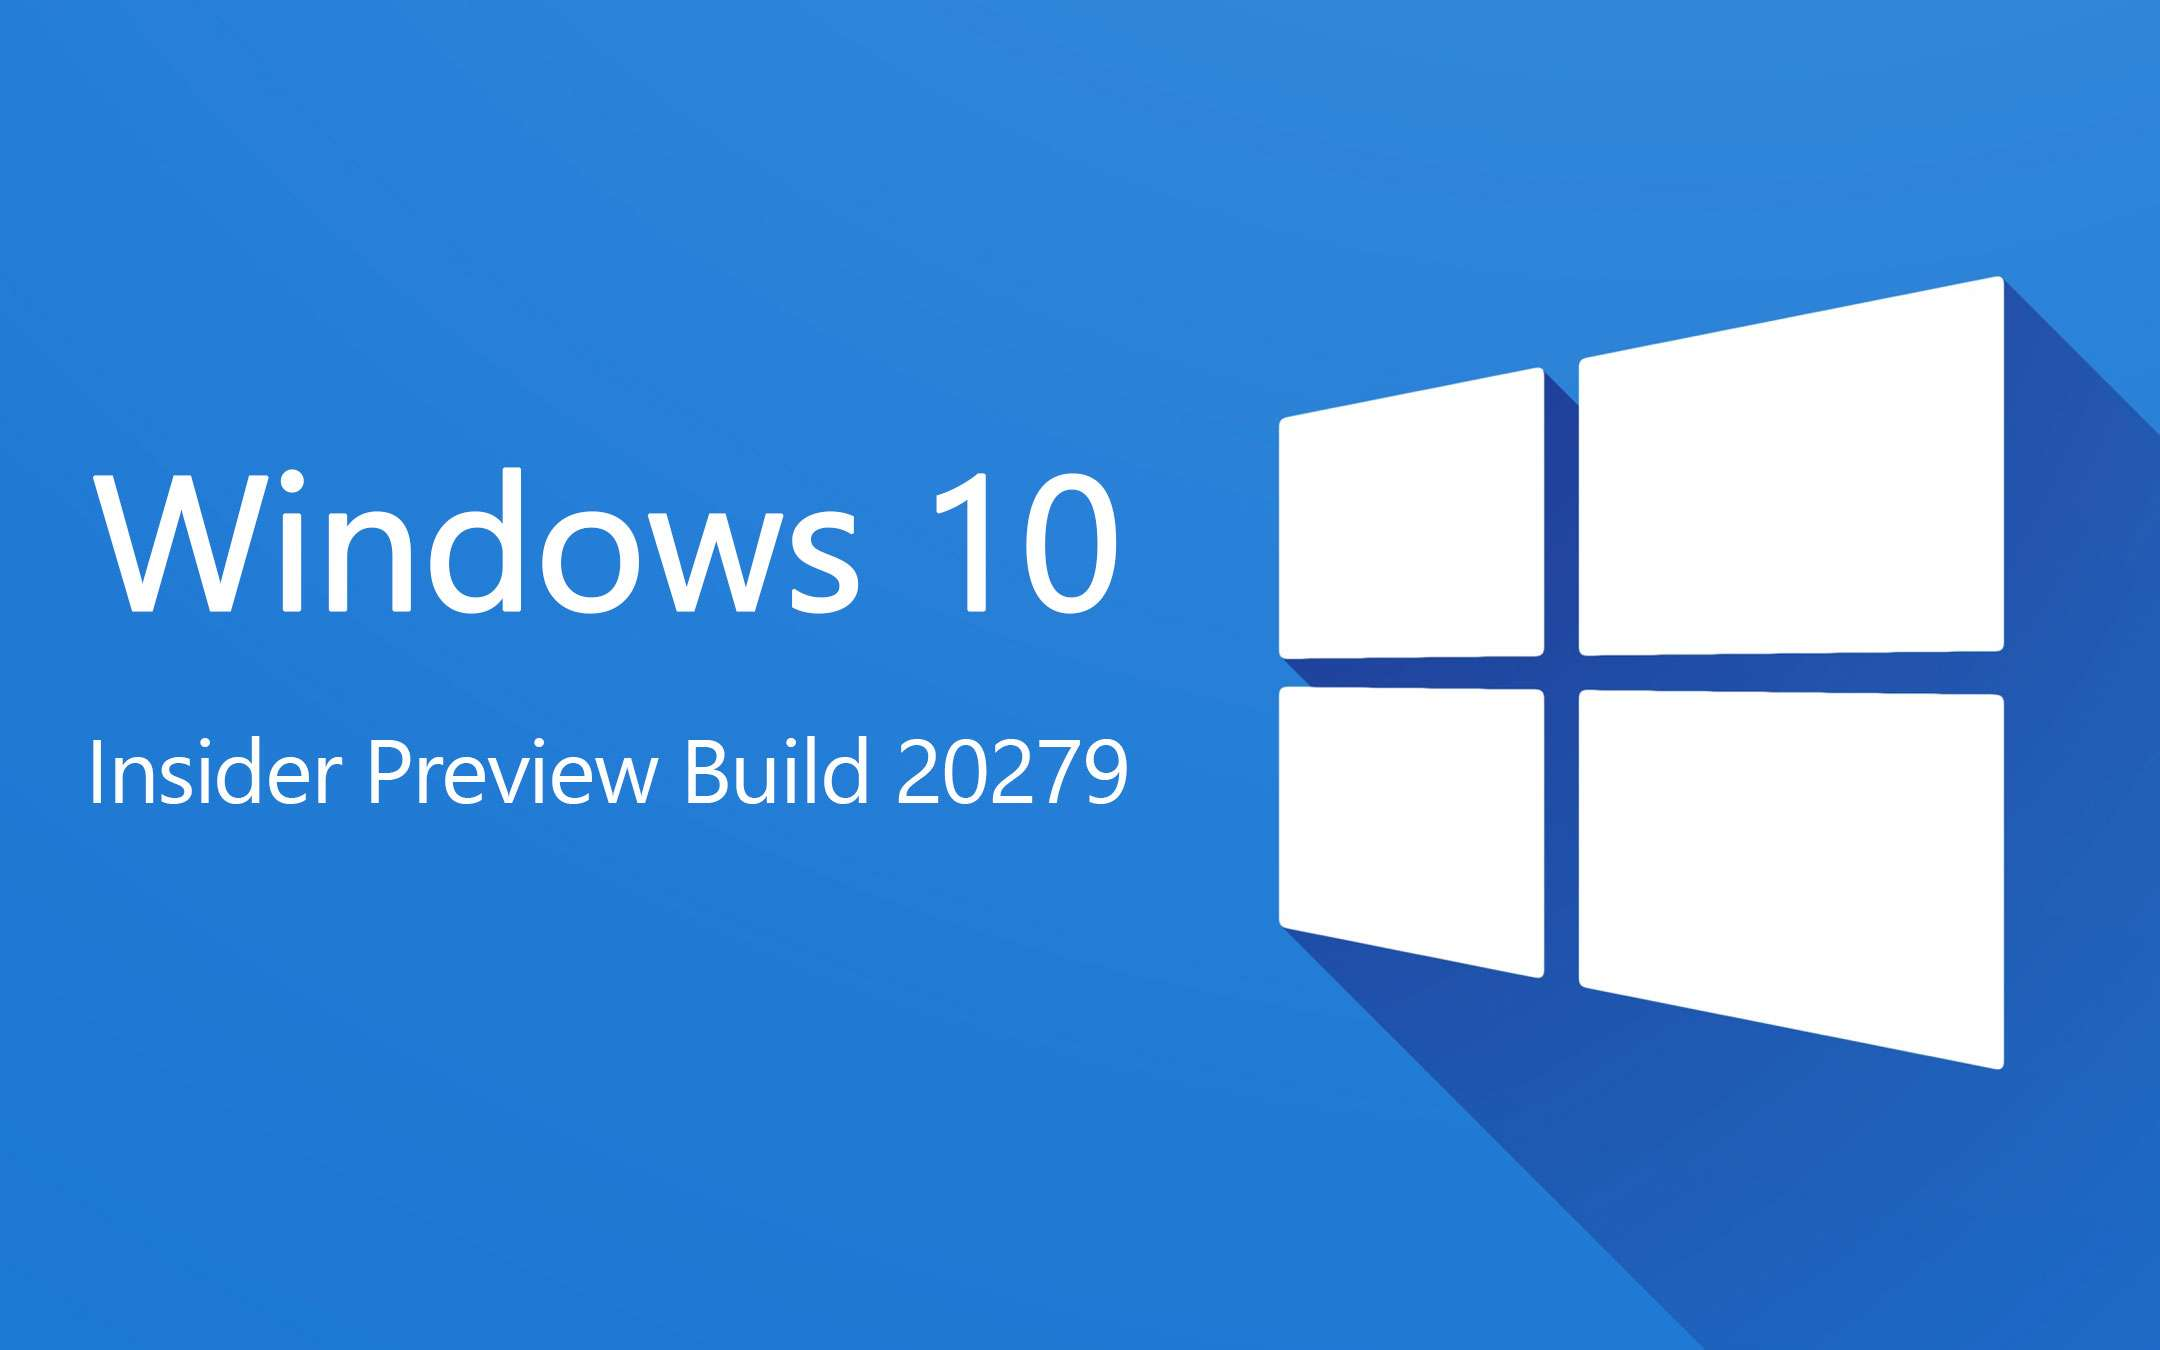 W10 Insider Preview Build 20279: Nothing new